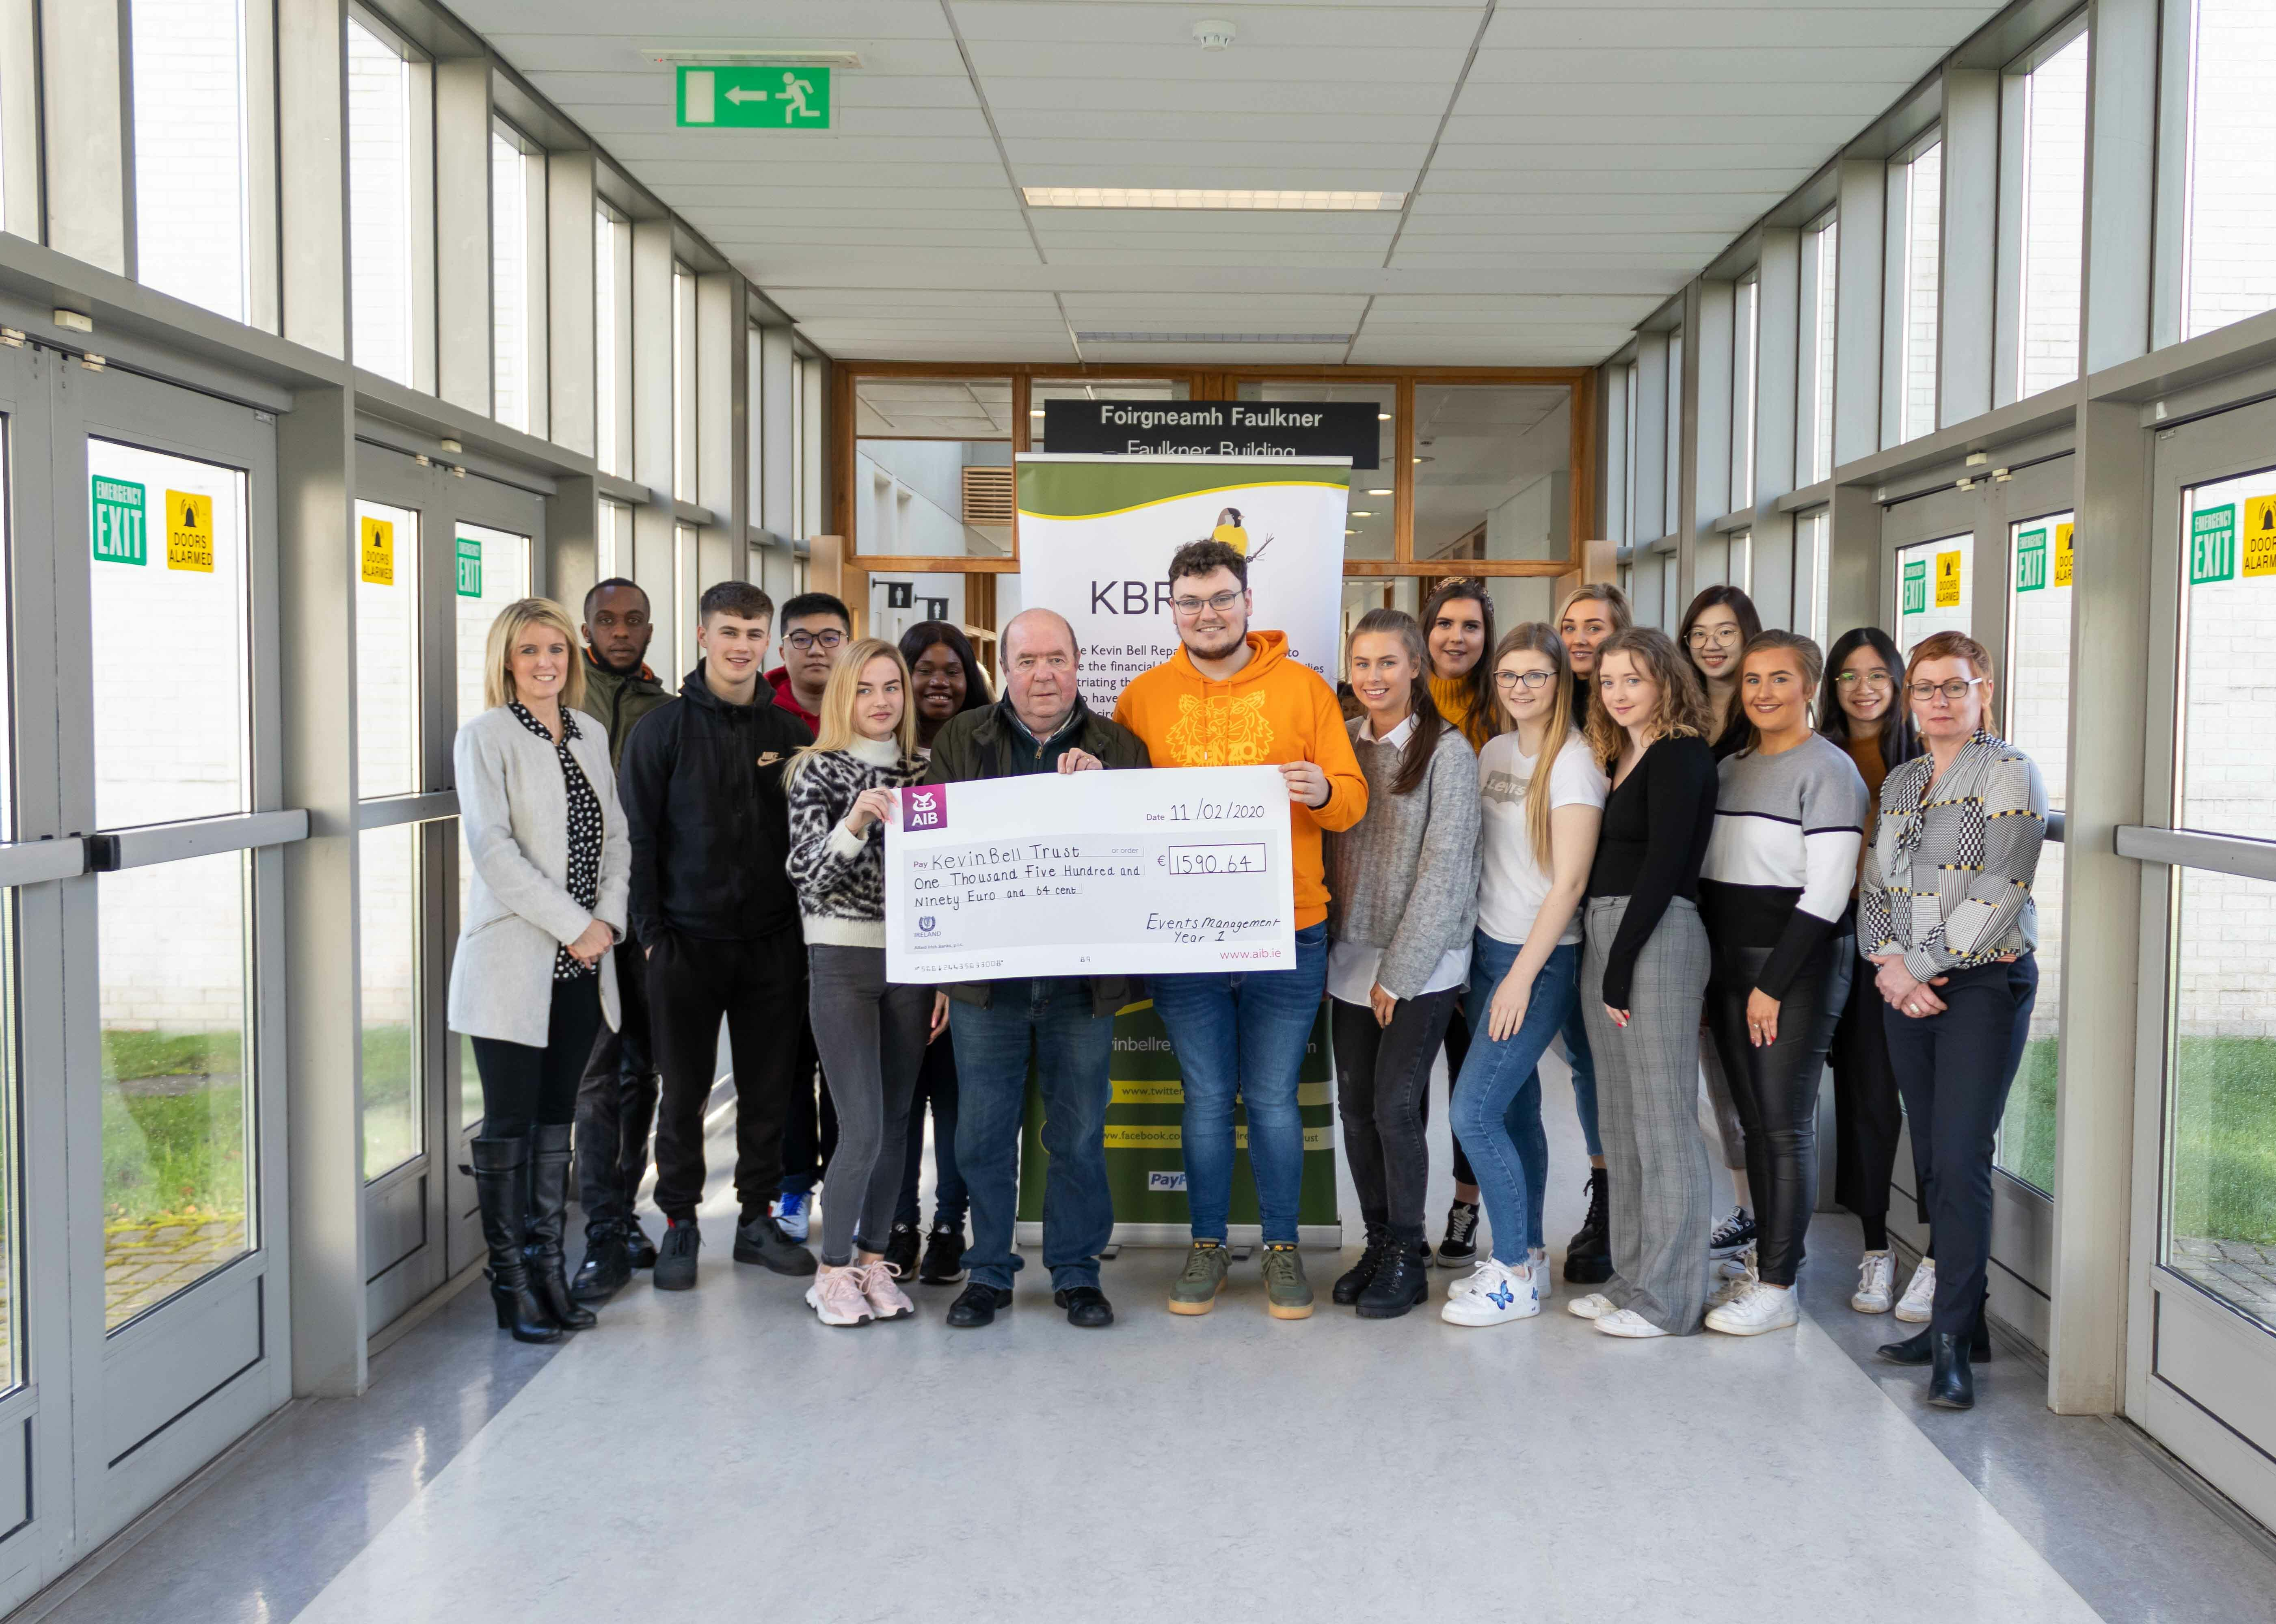 First Year Bachelor of Arts Event Management Students Raise €1590 For The KBRT